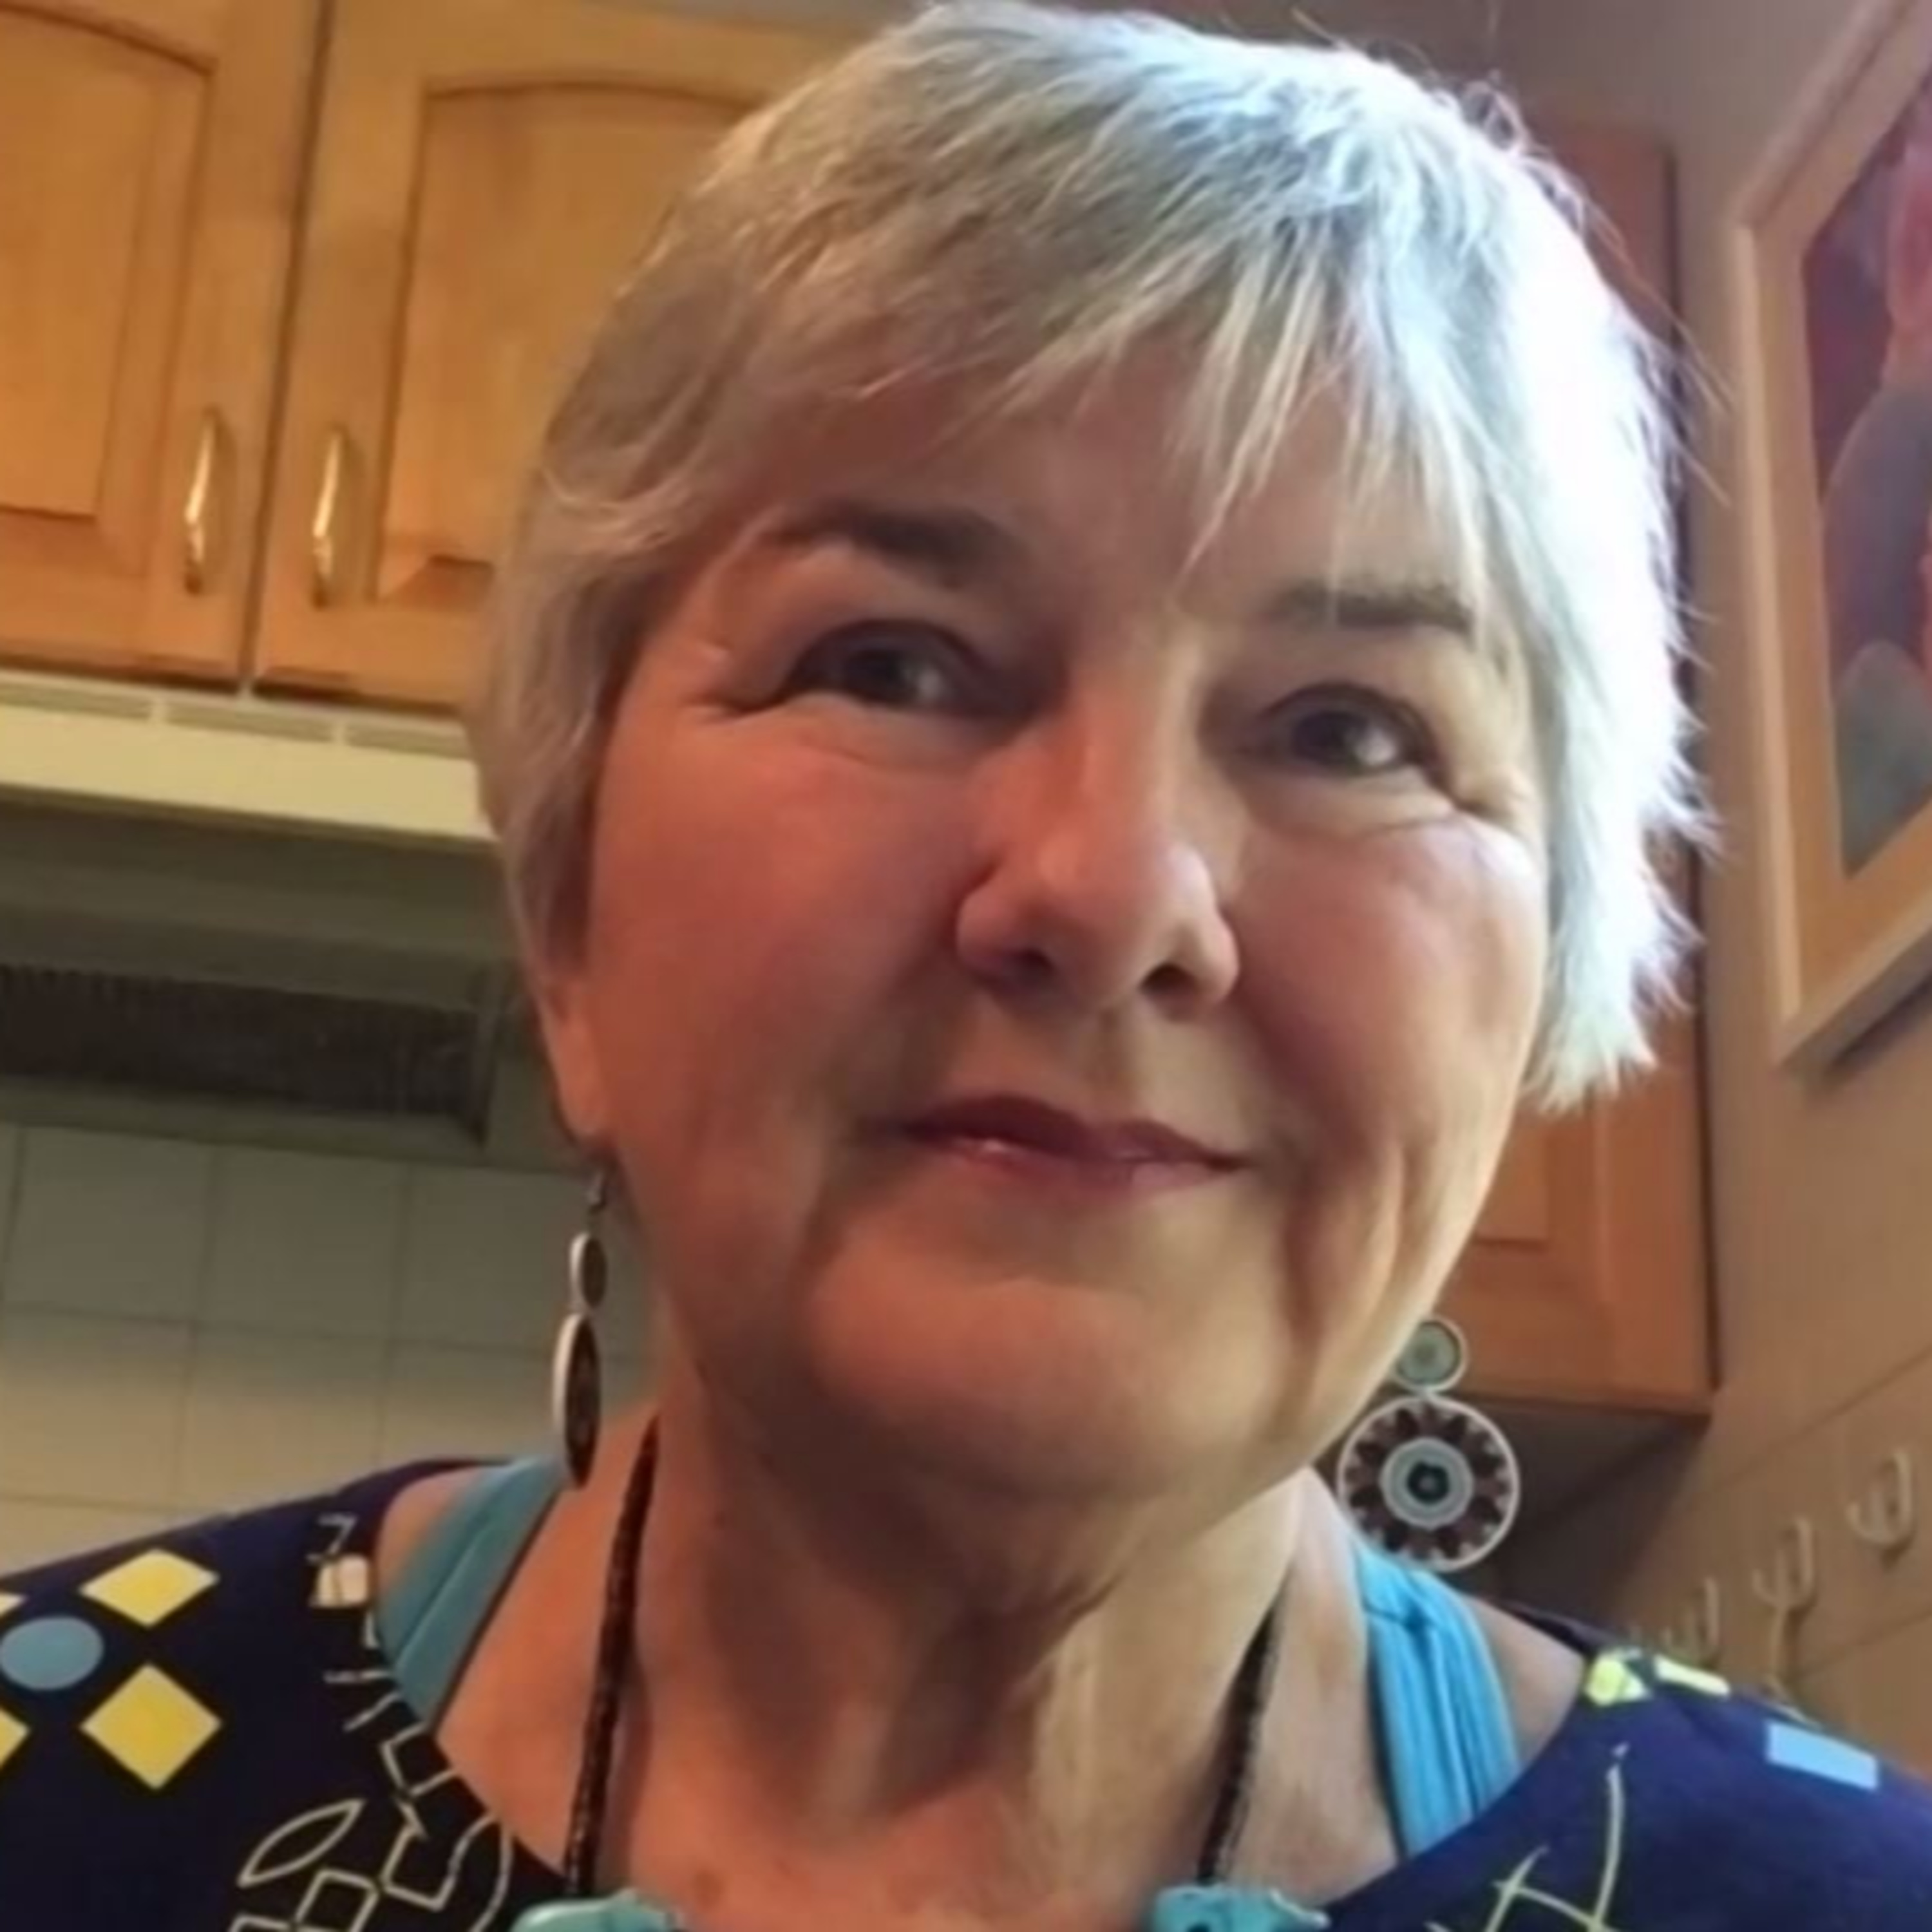 Mental Health Download: Exploring Mental Illness, Suicide, Homelessness and Incarceration - COVID-19: Linda Alegria's Virtual Support Group & Hugs